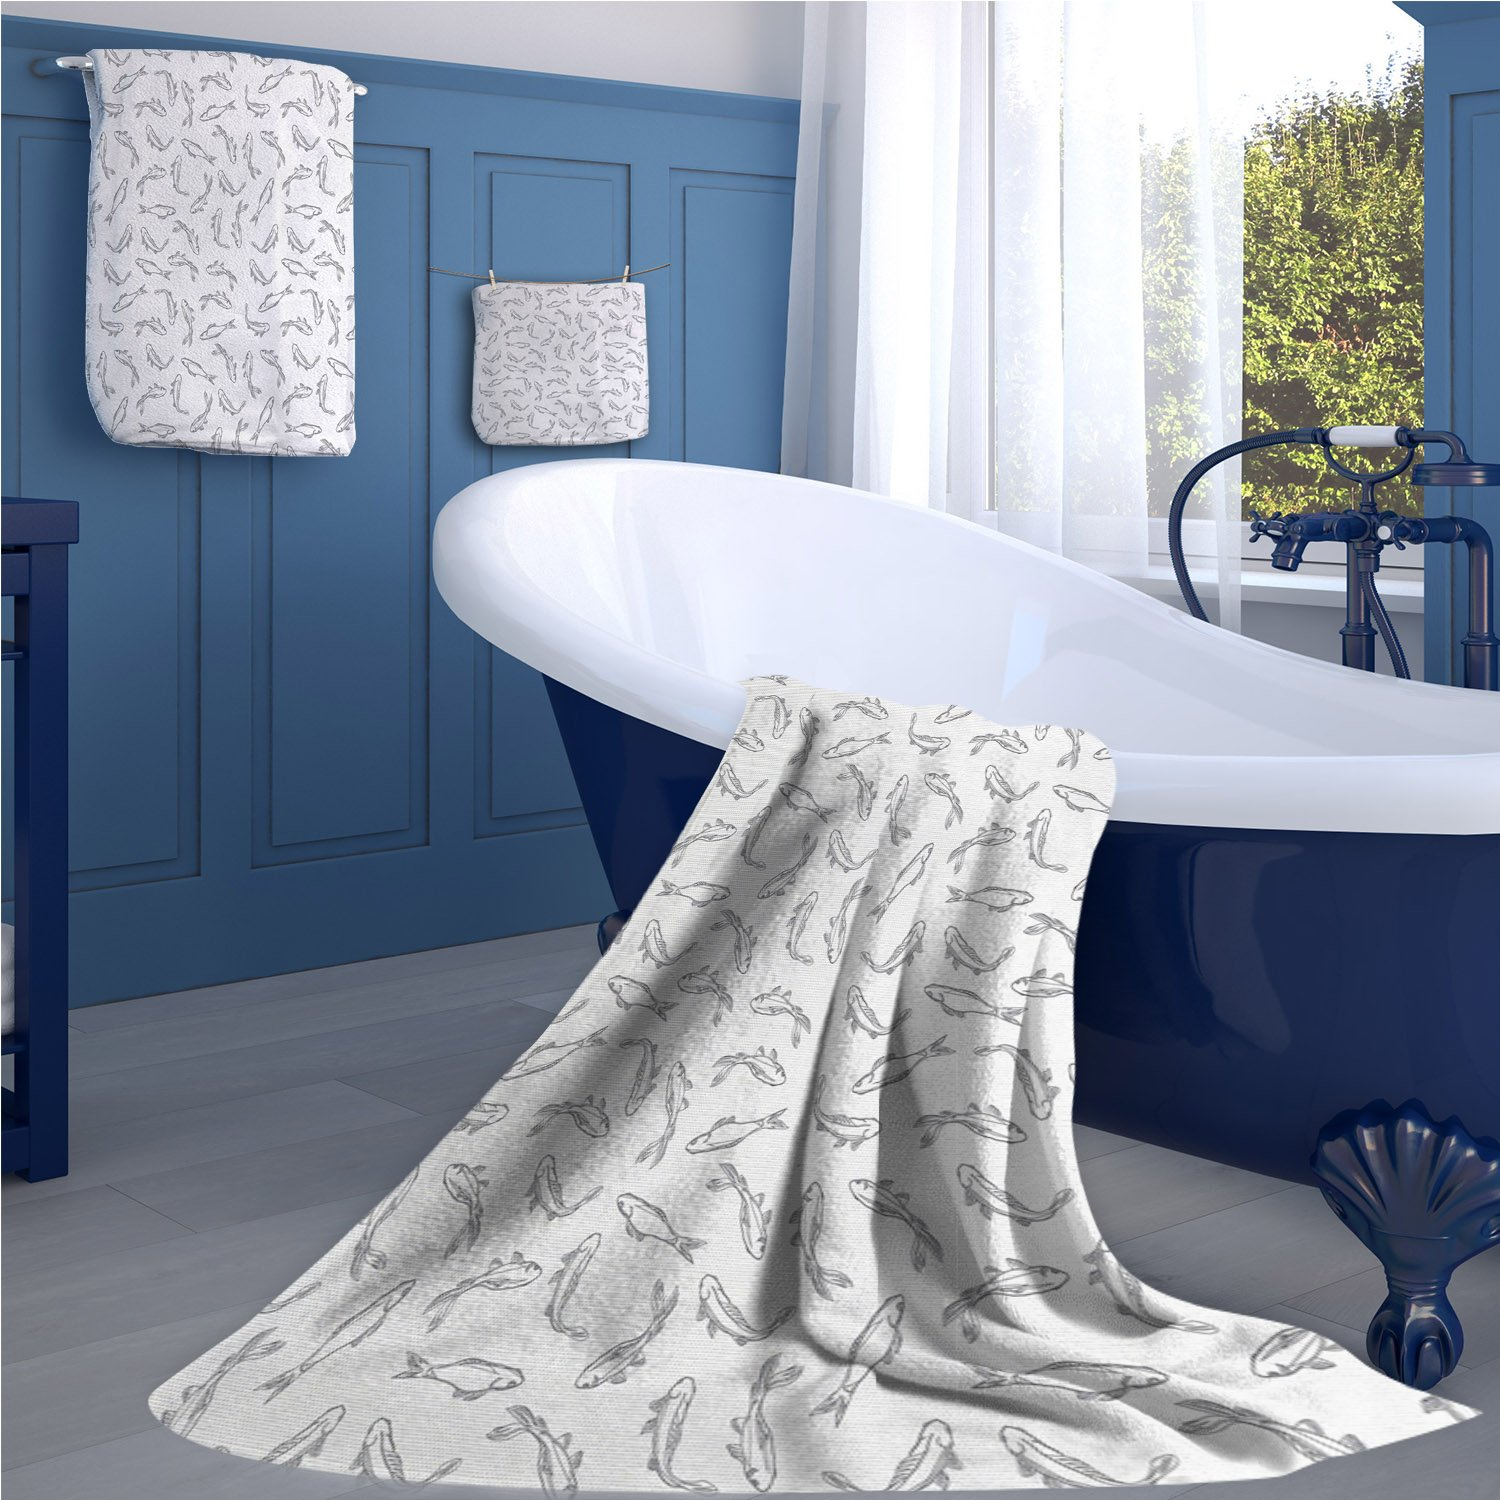 Grey and White Extra wide bathroom accessories Fish Pattern Underwater Animals Abstract Marine Lake Peaceful Illustration luxury hand towels set Grey White